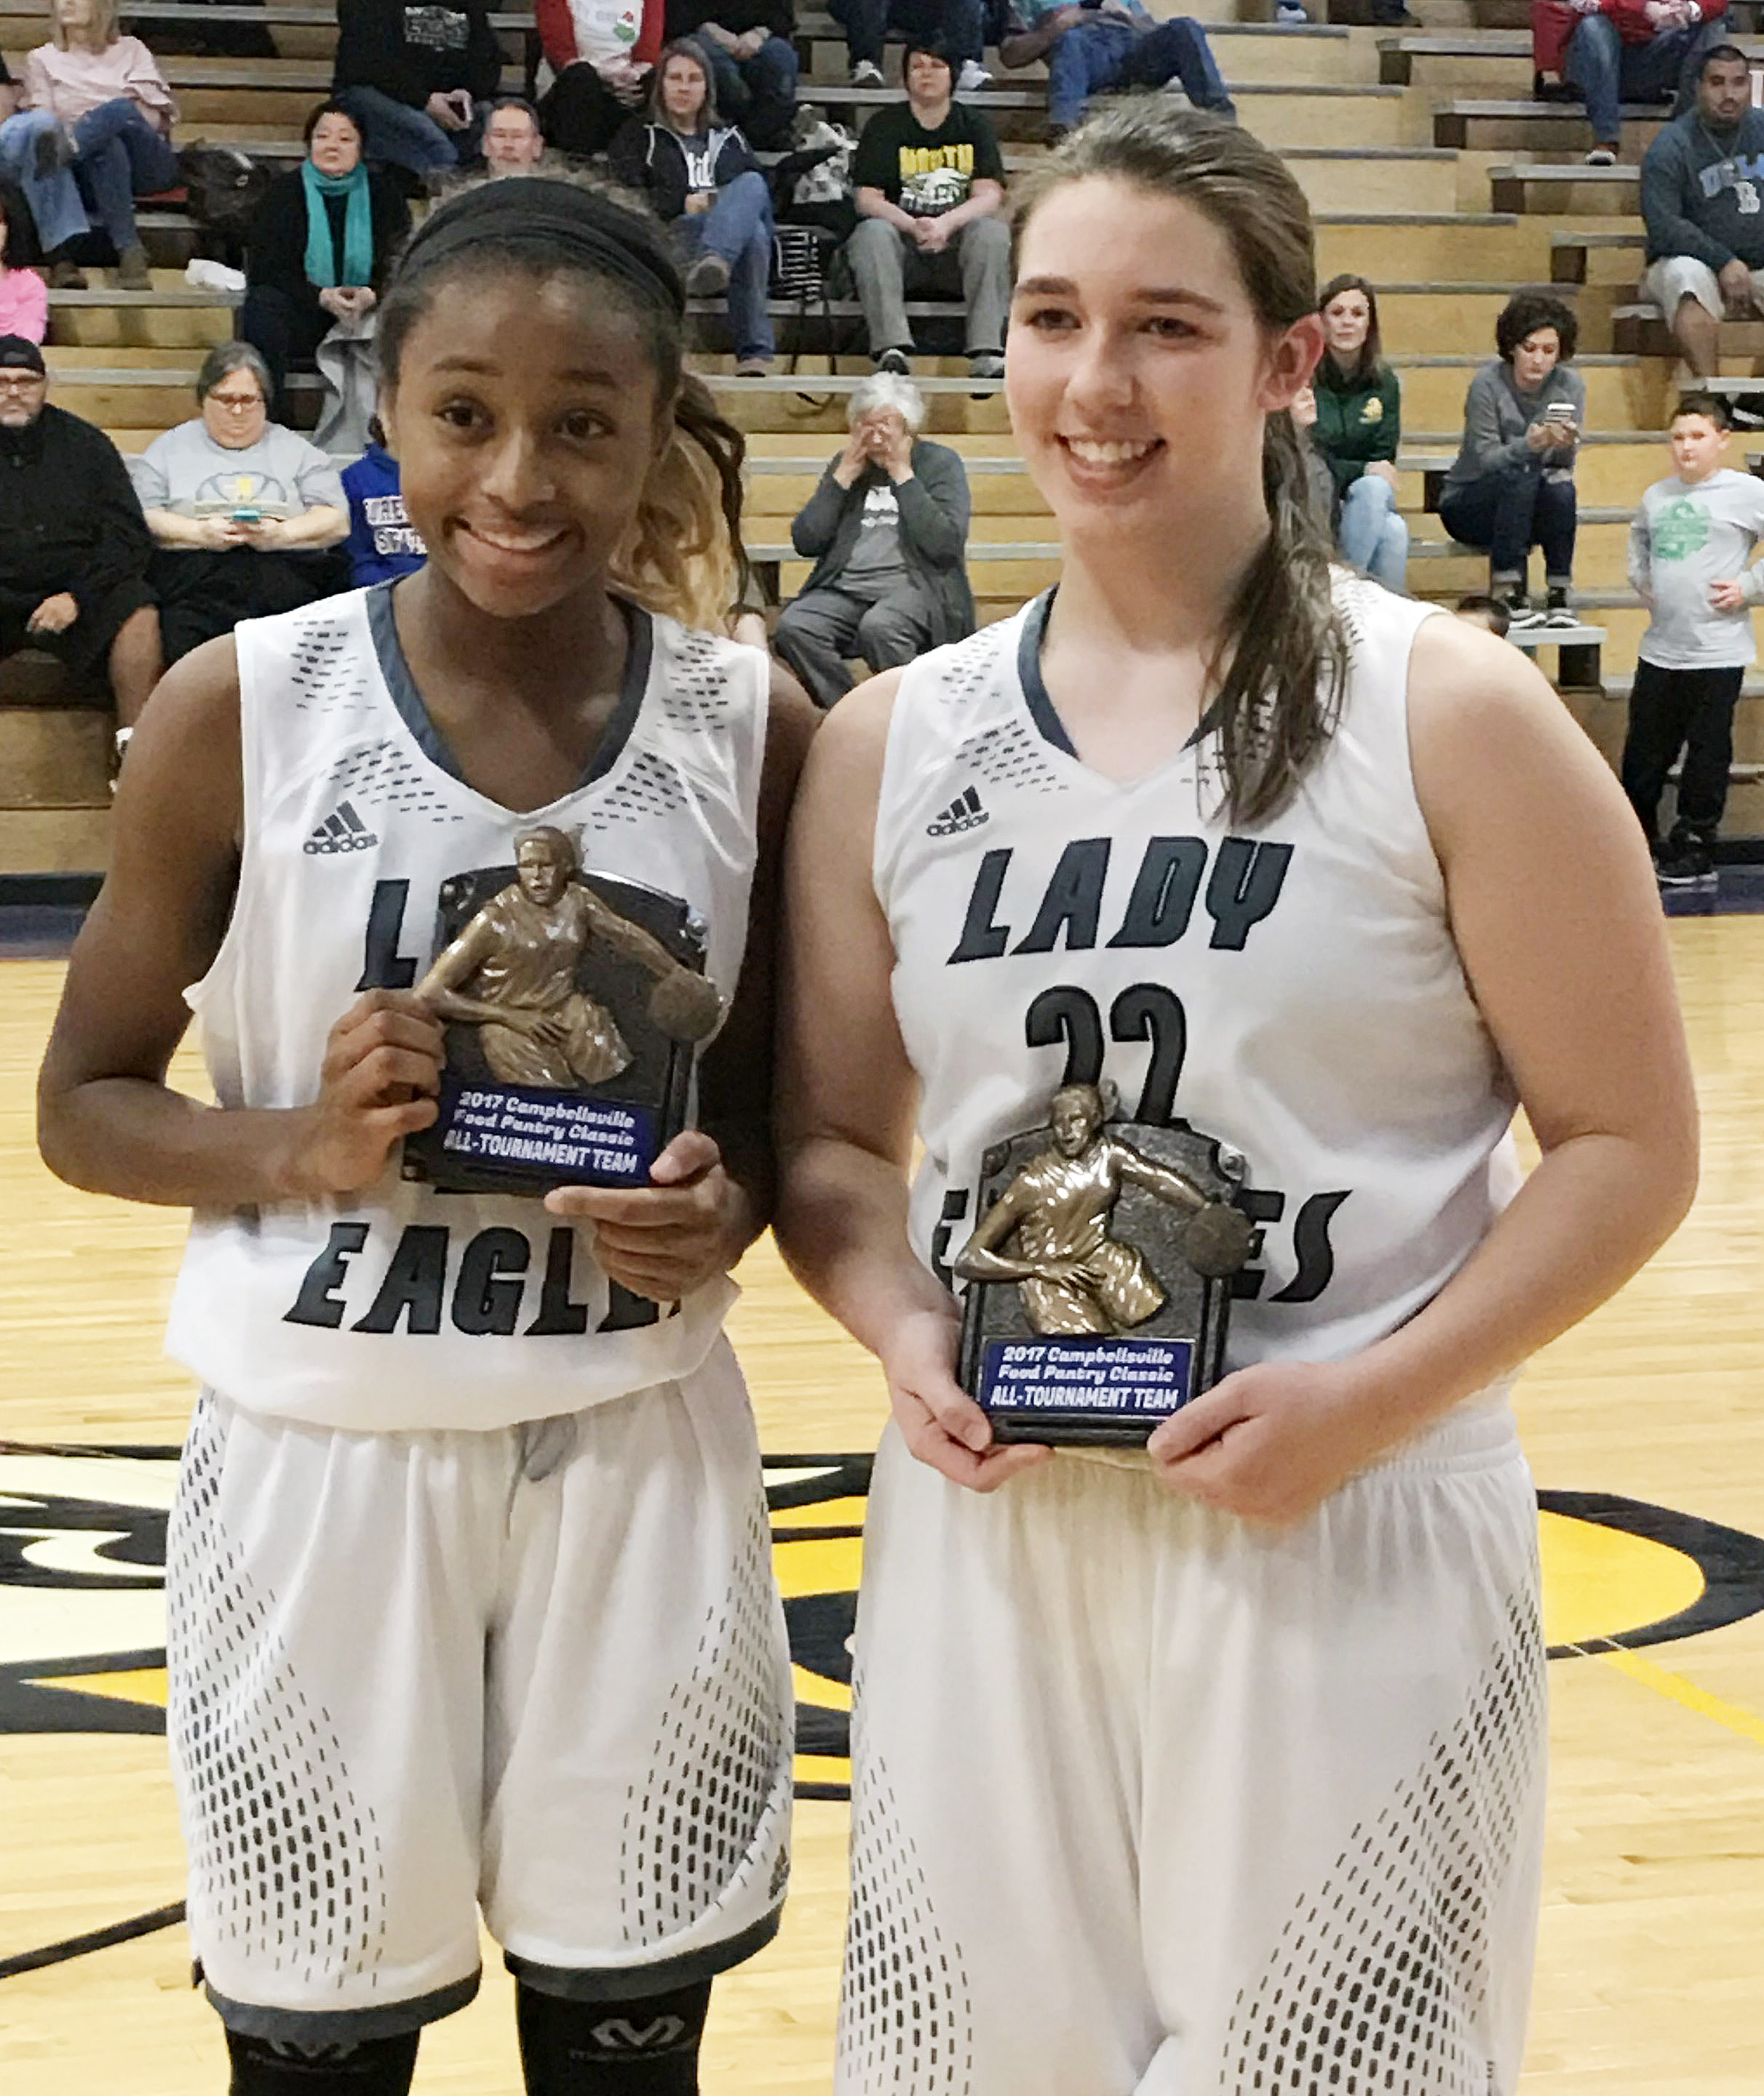 Campbellsville Middle School eighth-grader Bri Gowdy, at left, and CHS freshman Abi Wiedewitsch are named to the Food Pantry Classic all-tournament team.